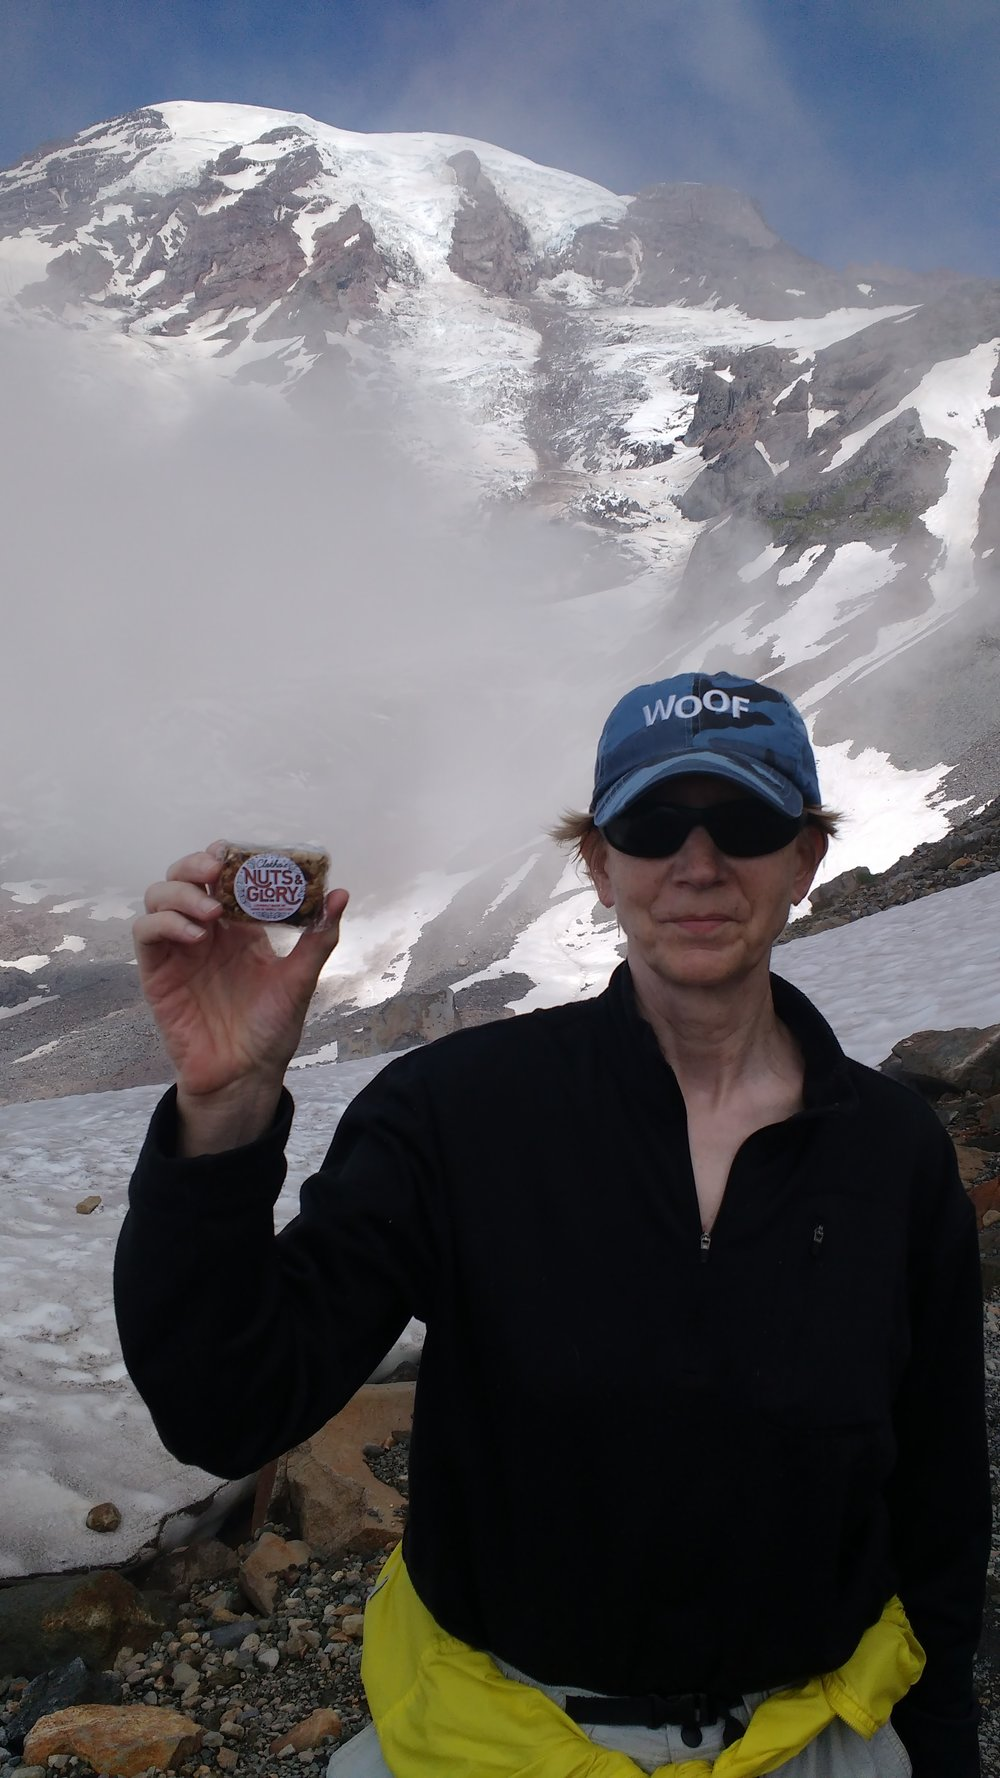 """Amy, an amazing cyclist, 9-time cancer survivor, and a veterinarian from Connecticut (hence the """"Woof""""hat), shared this photo from a hike on the Skyline Trail in Mount Rainier National Park."""